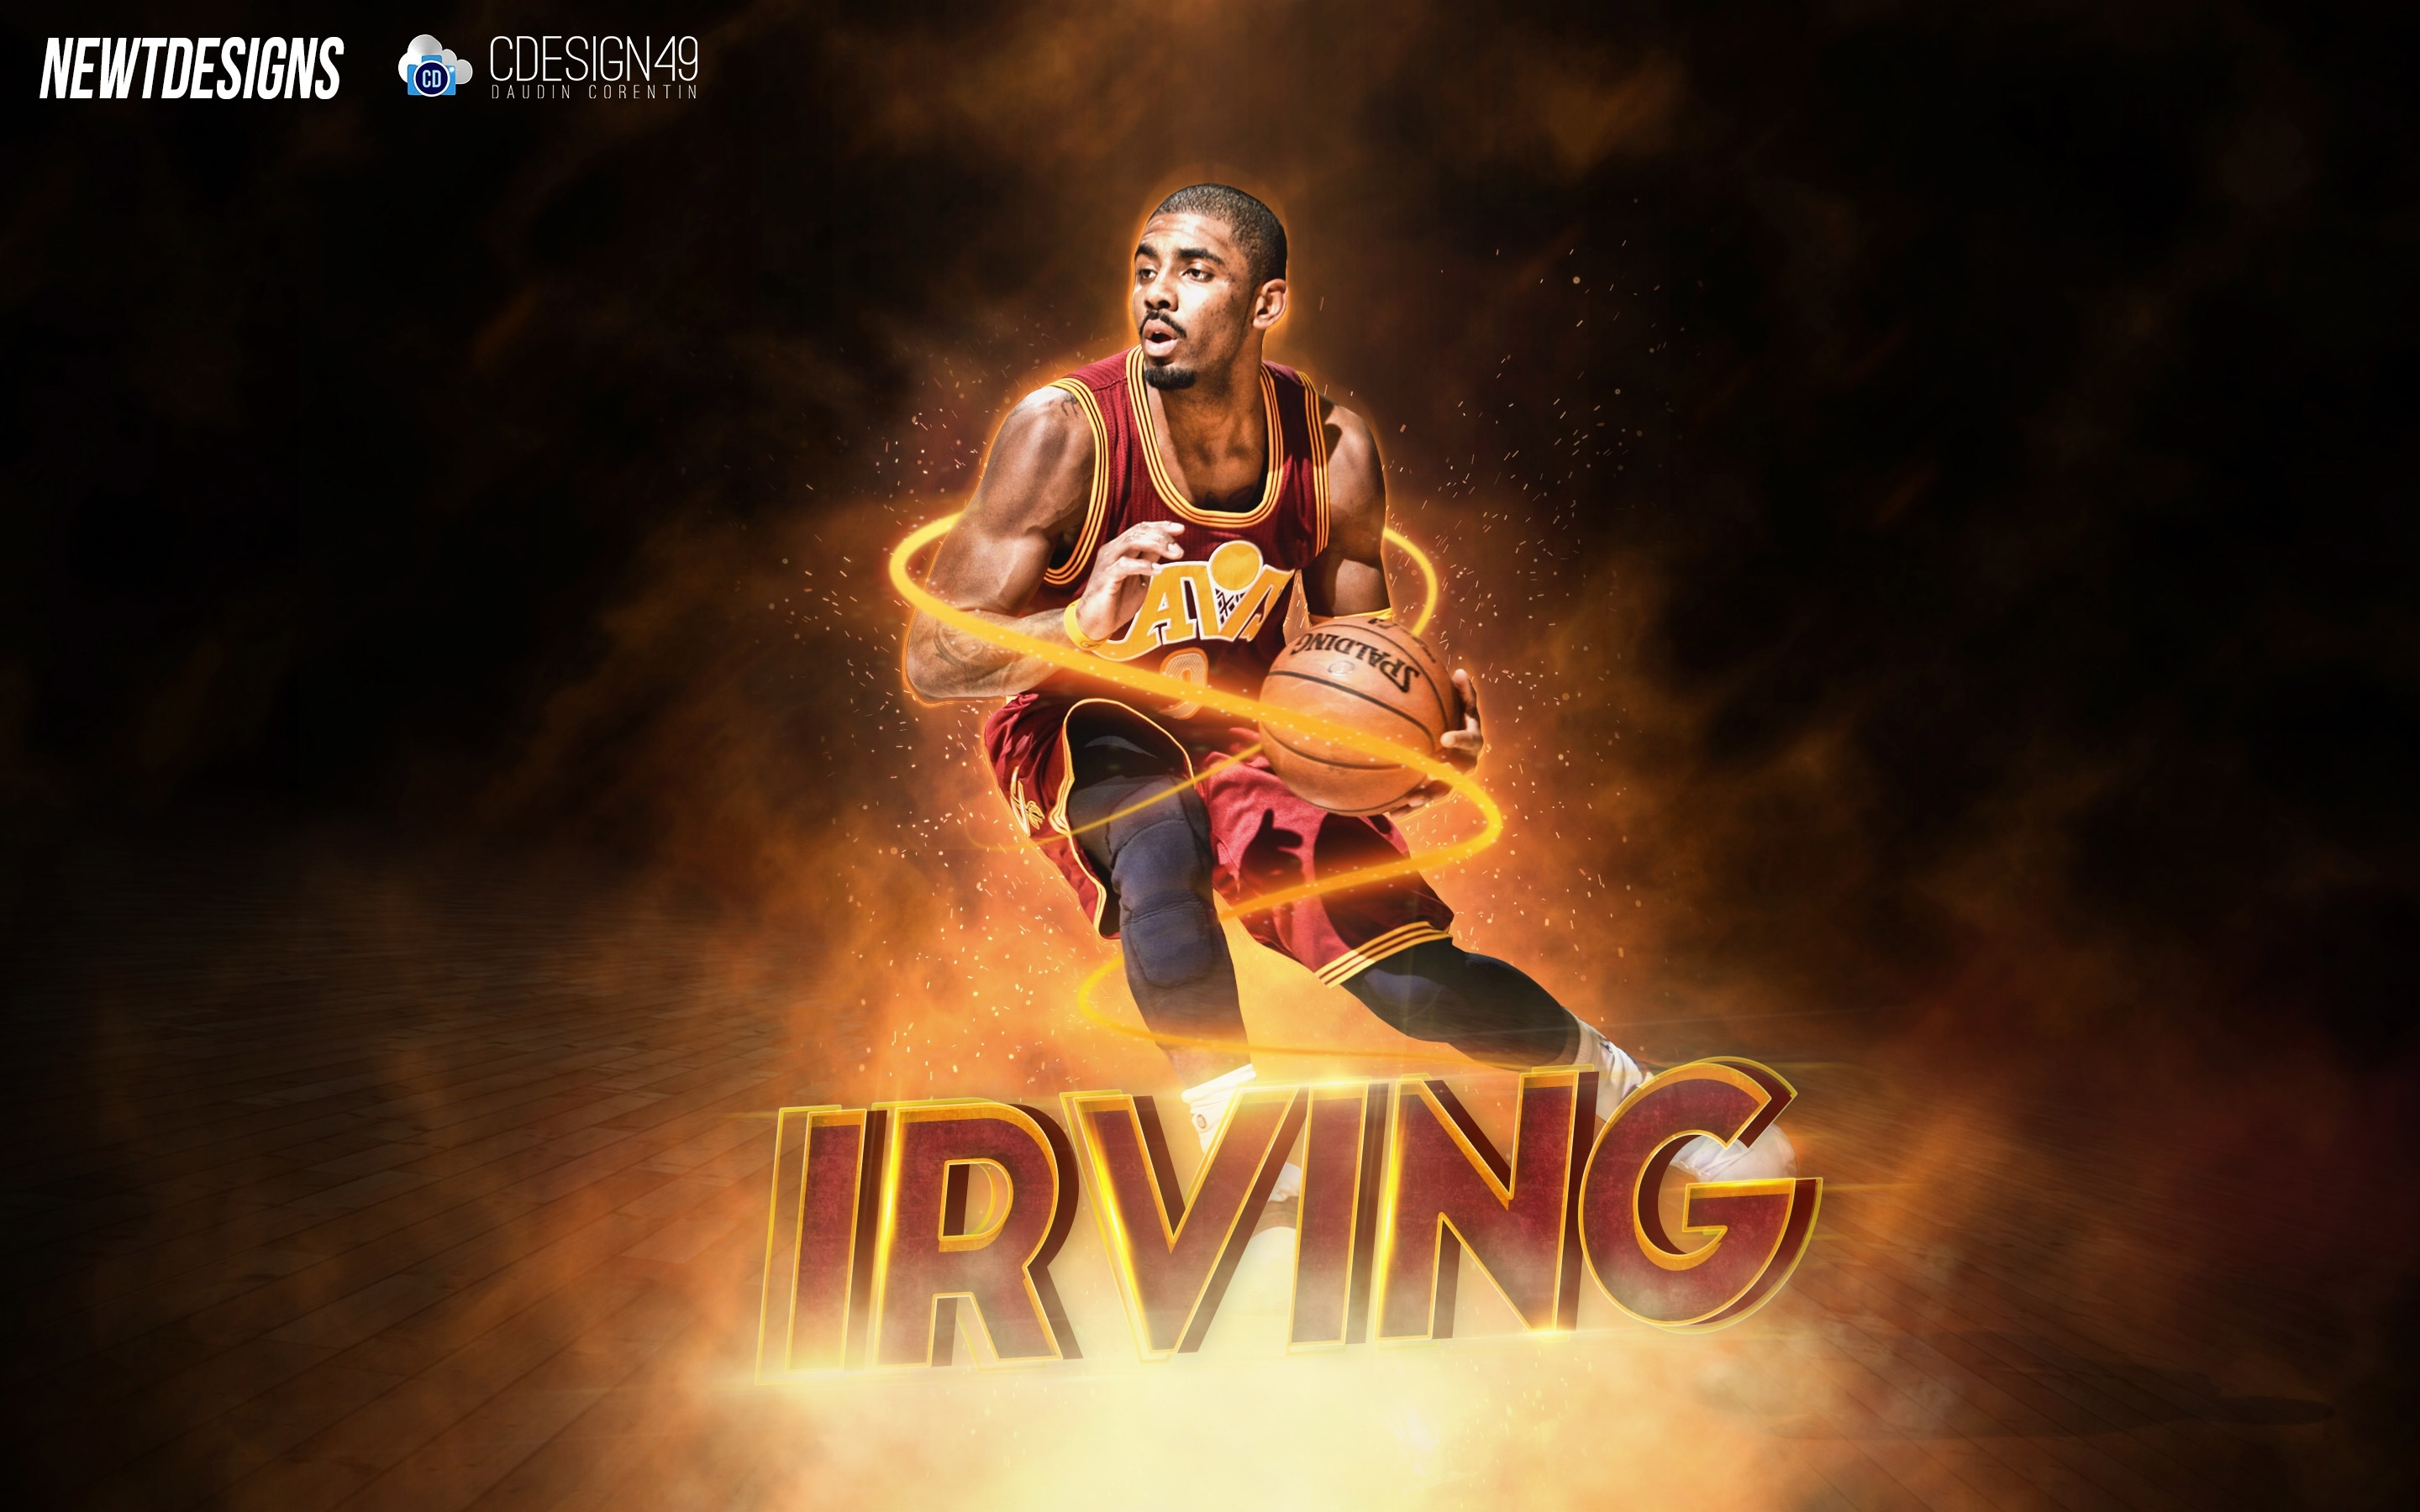 kyrie-irving-cleveland-cavaliers-hd-wallpapers - wallpaper.wiki